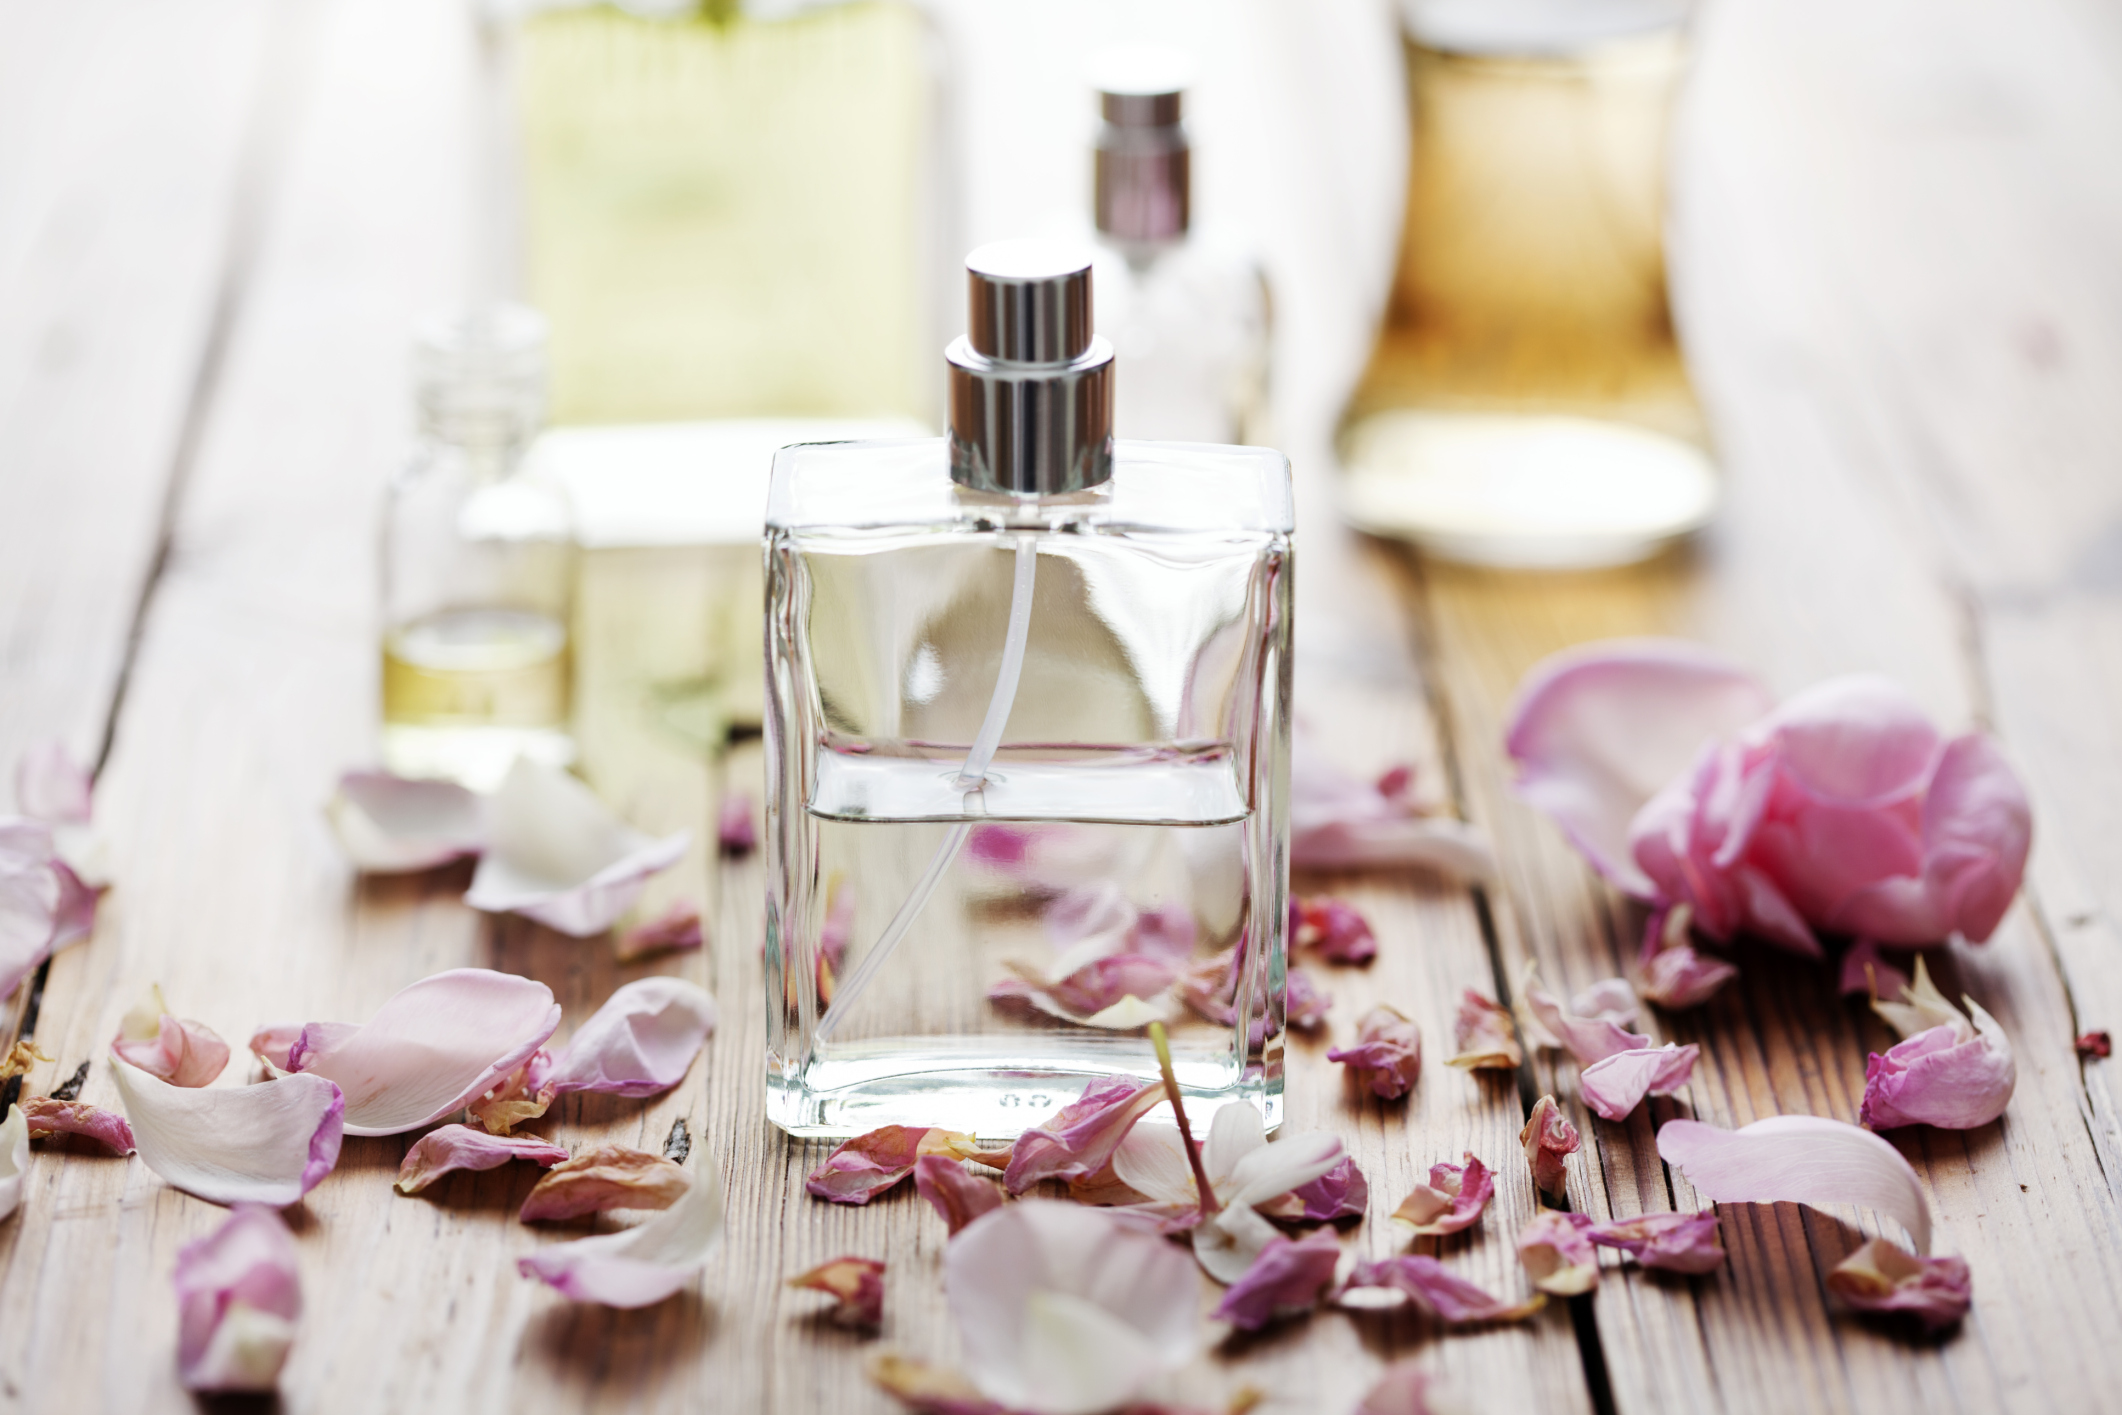 Fragrance Feature